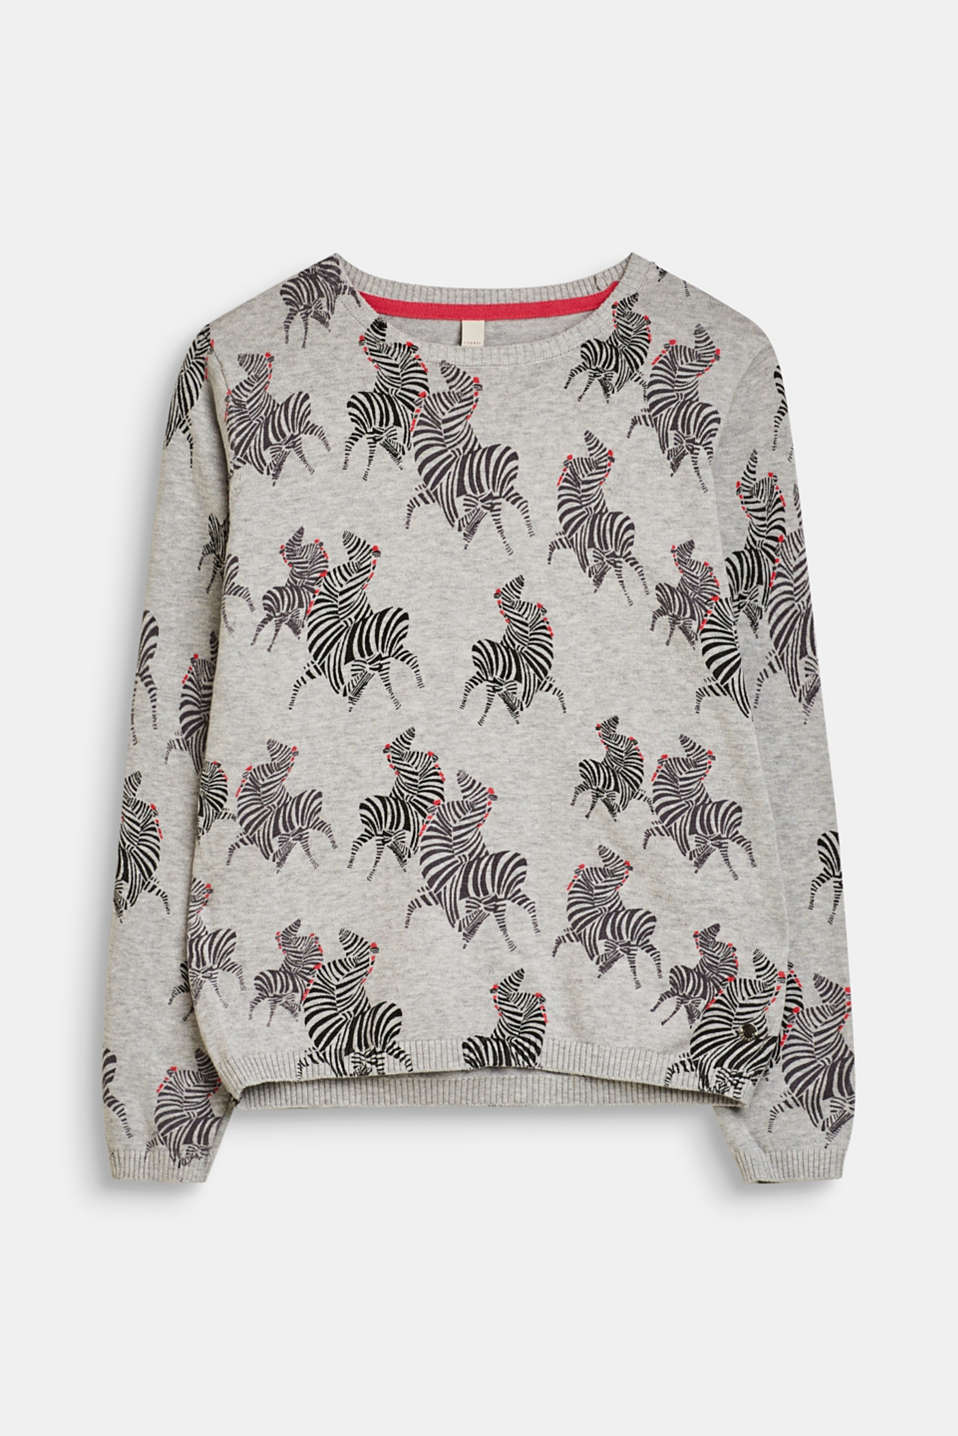 Esprit - Jumper with a zebra print, 100% cotton